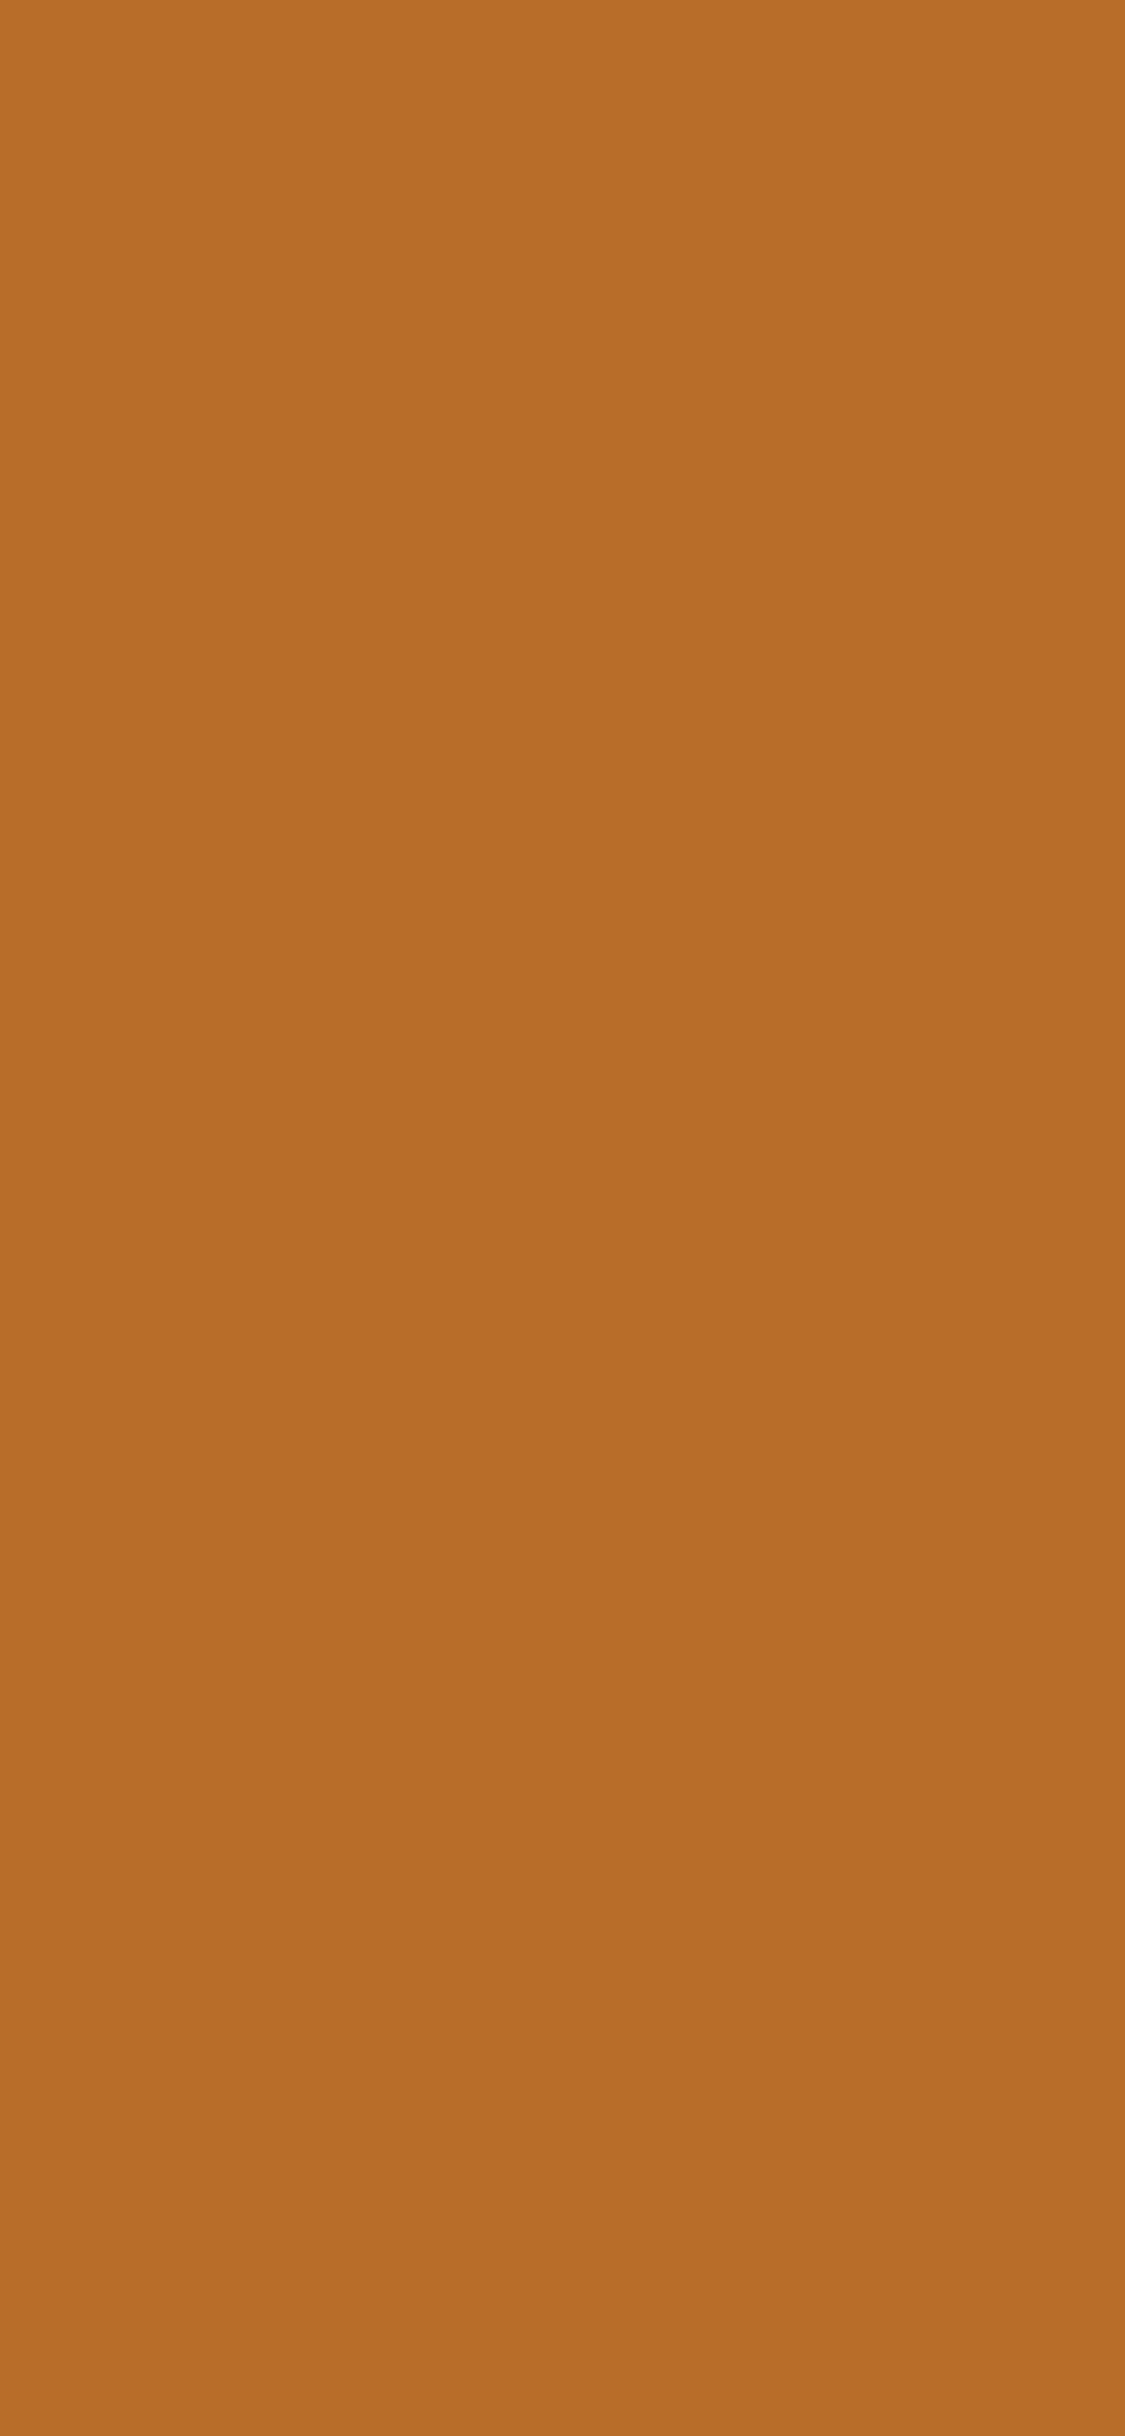 1125x2436 Liver Dogs Solid Color Background